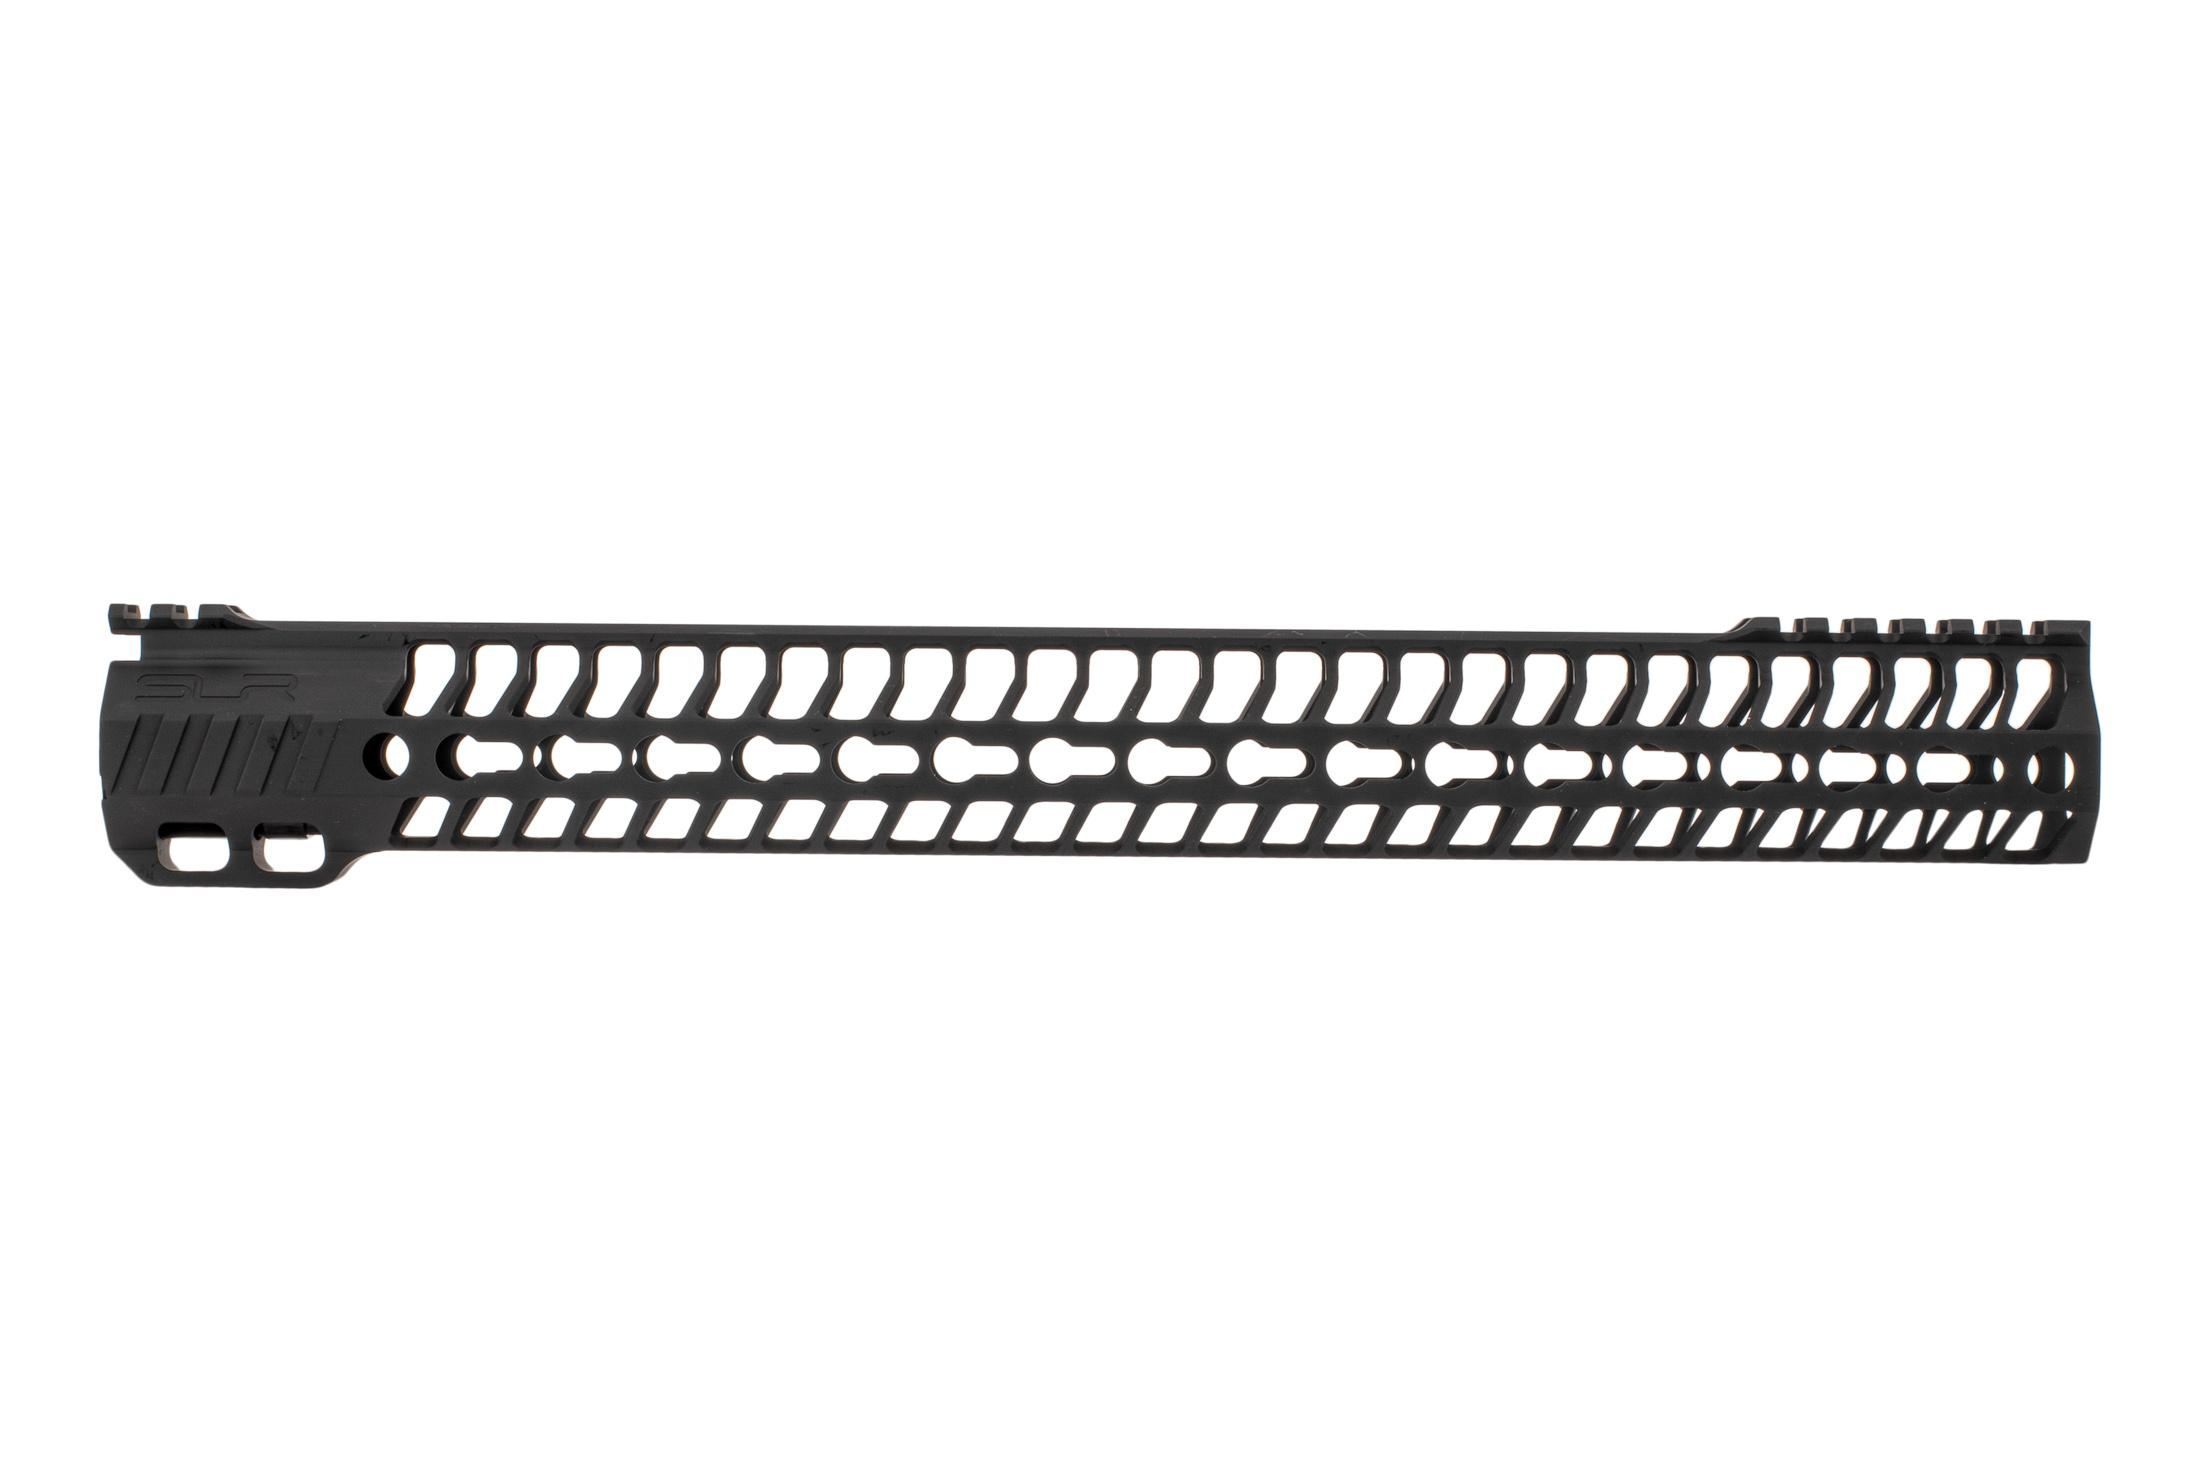 SLR Rifleworks 16.0 HELIX AR-15 handguard with interrupted top rail features M-LOK on four sides and a black finish